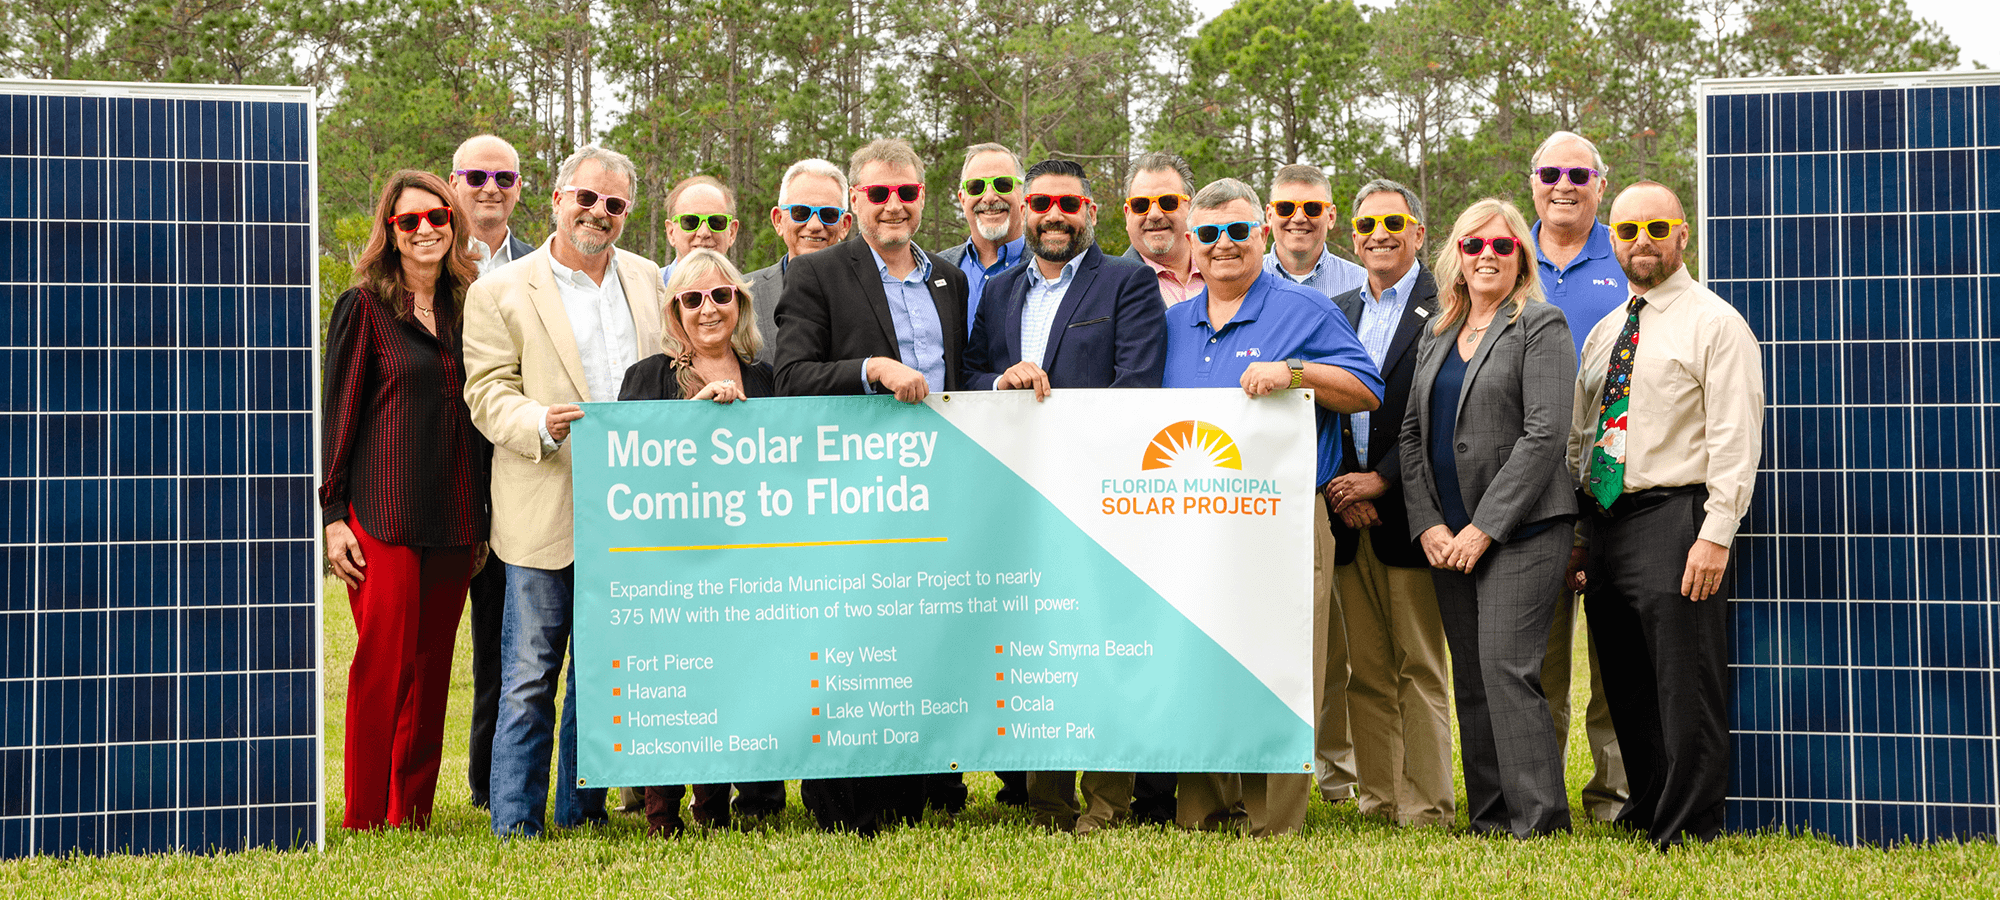 Florida Municipal Solar Project Phase II Announcement